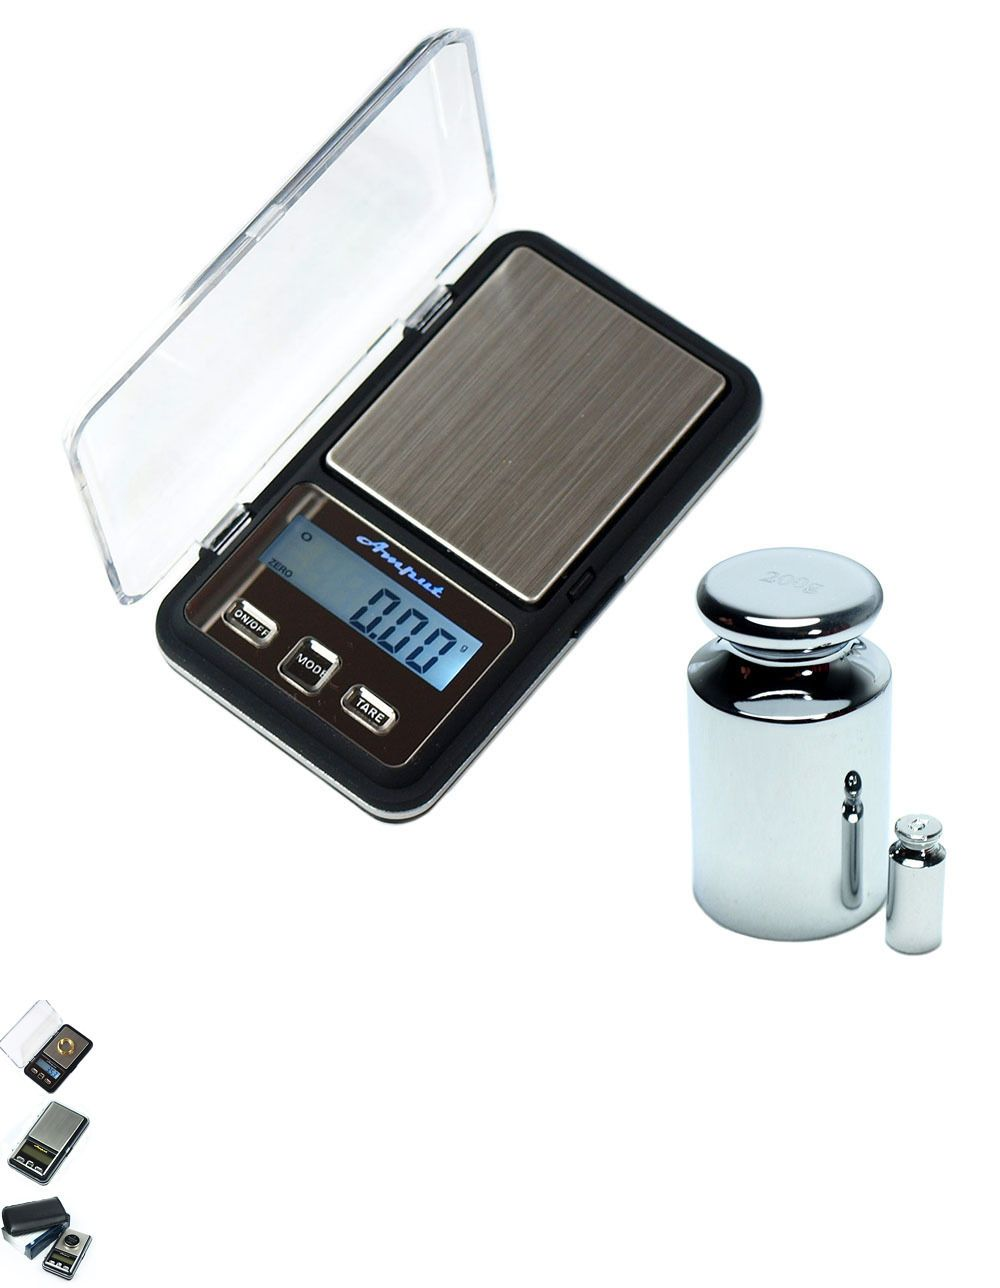 Scale Calibration Weights >> Scales 34088 200g X 0 01g Digital Scale Aptp 453 Mini Precision